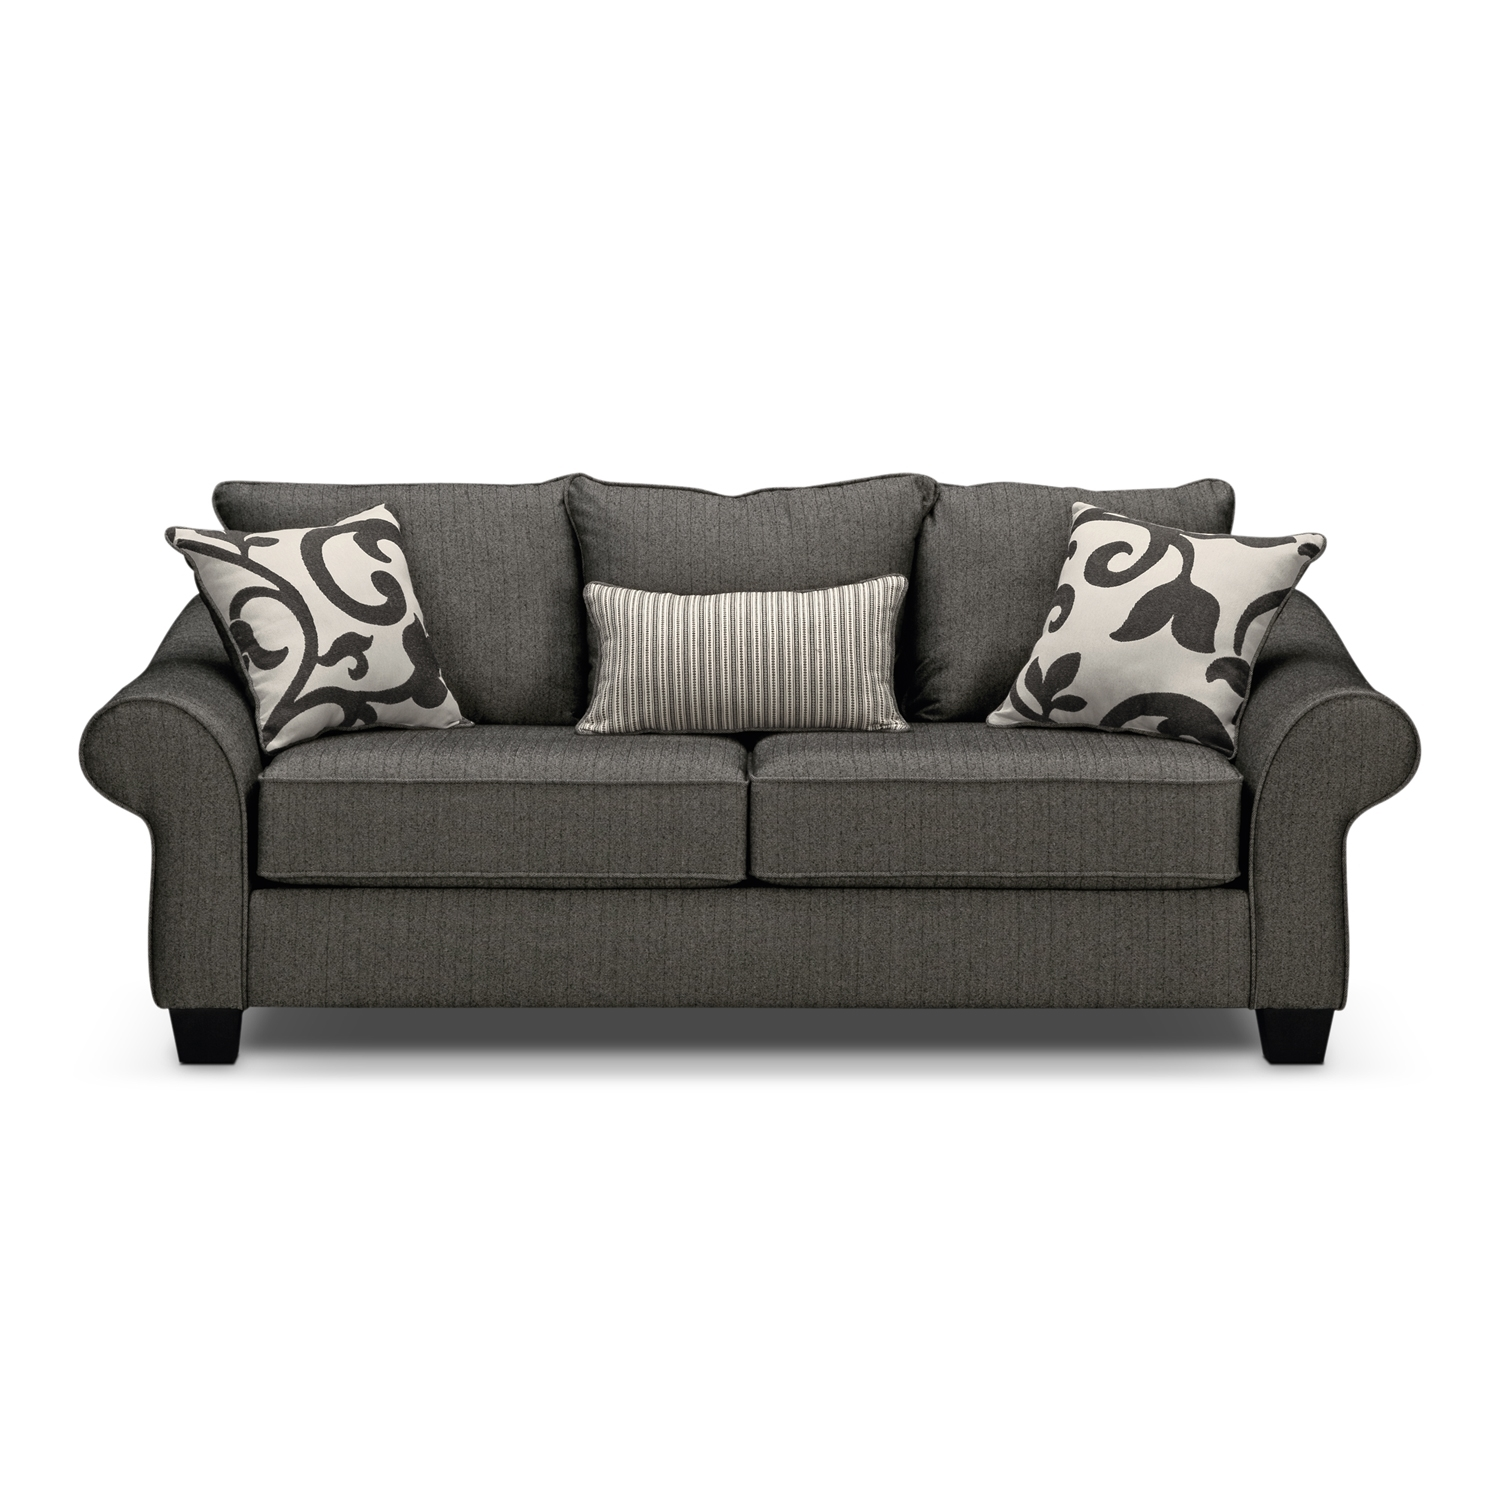 Value City Furniture Sofa Bed Inside Grey Sofa Chairs (Image 14 of 15)